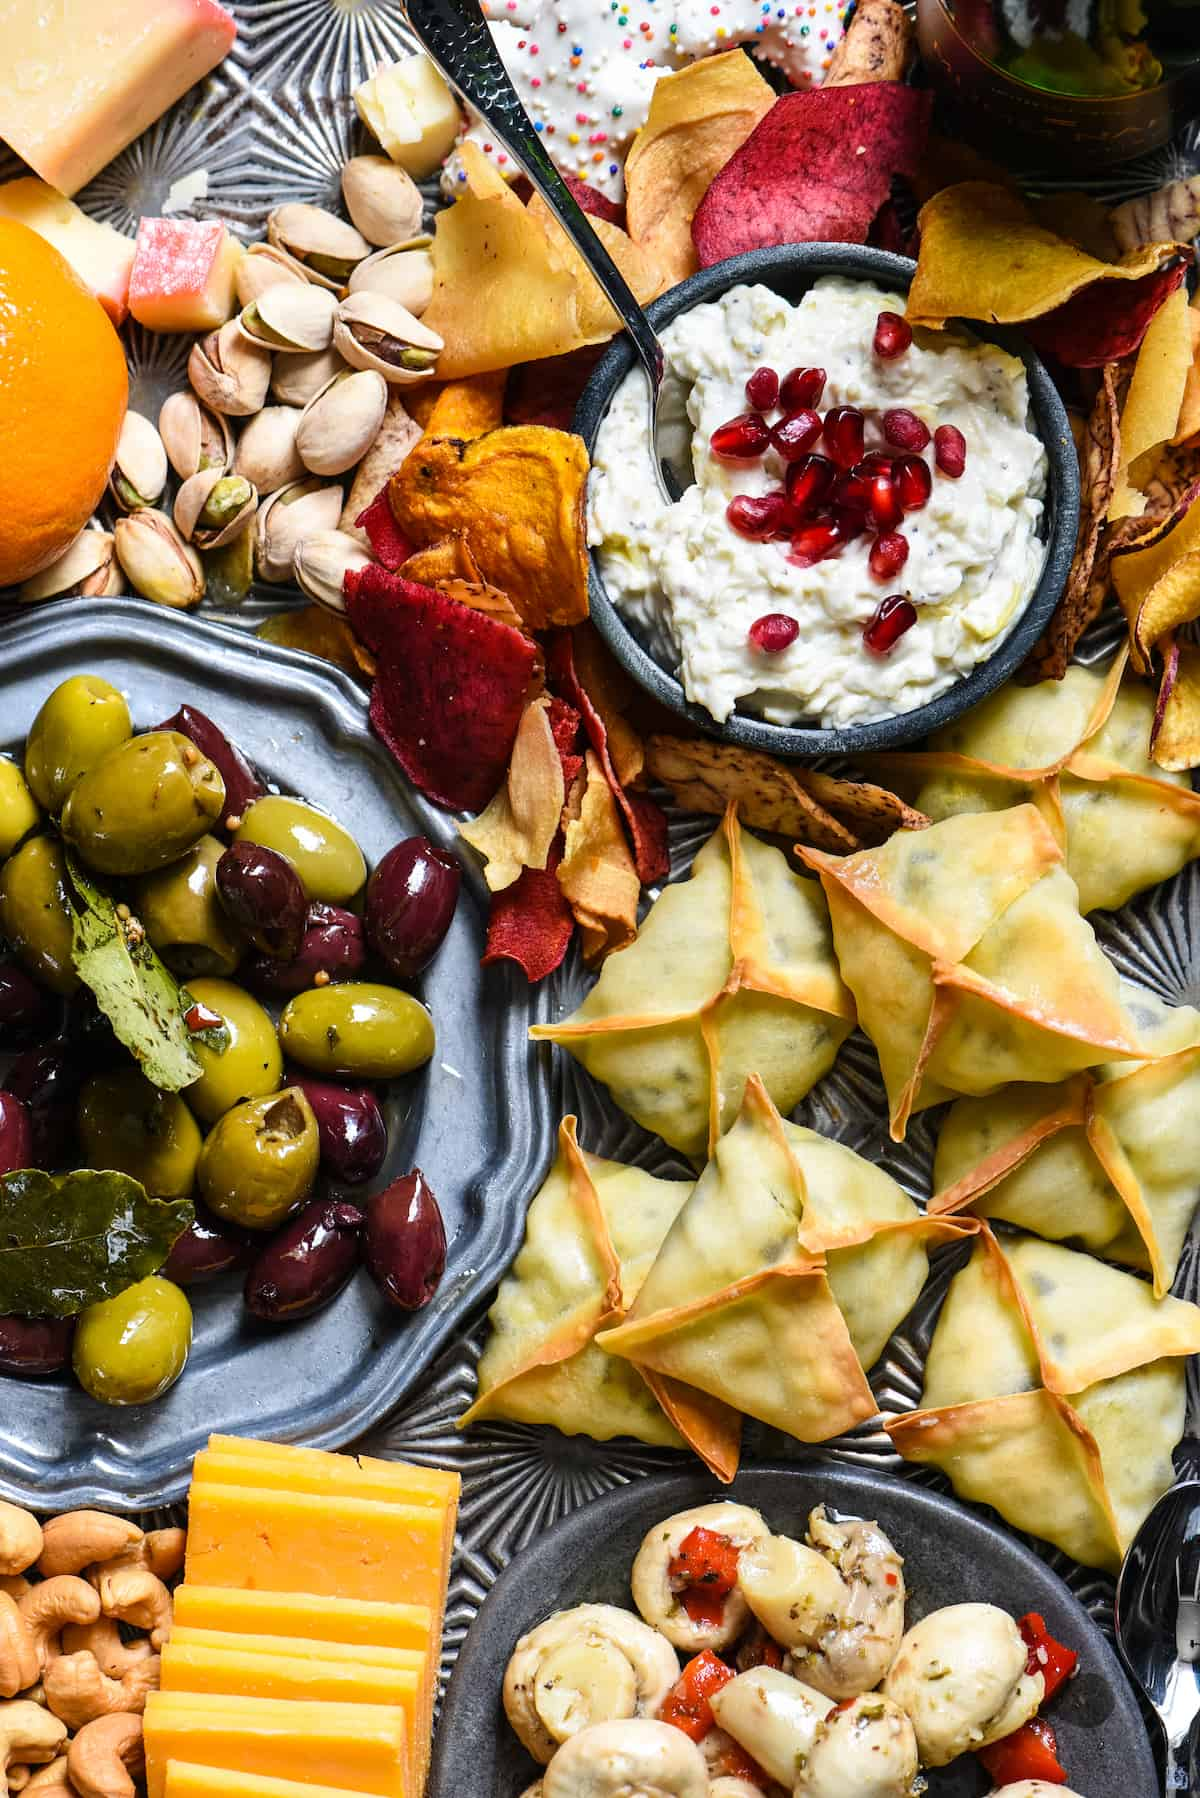 Closeup photo of platter of New Year's Eve finger foods, focusing on wontons, olives and creamy dip.